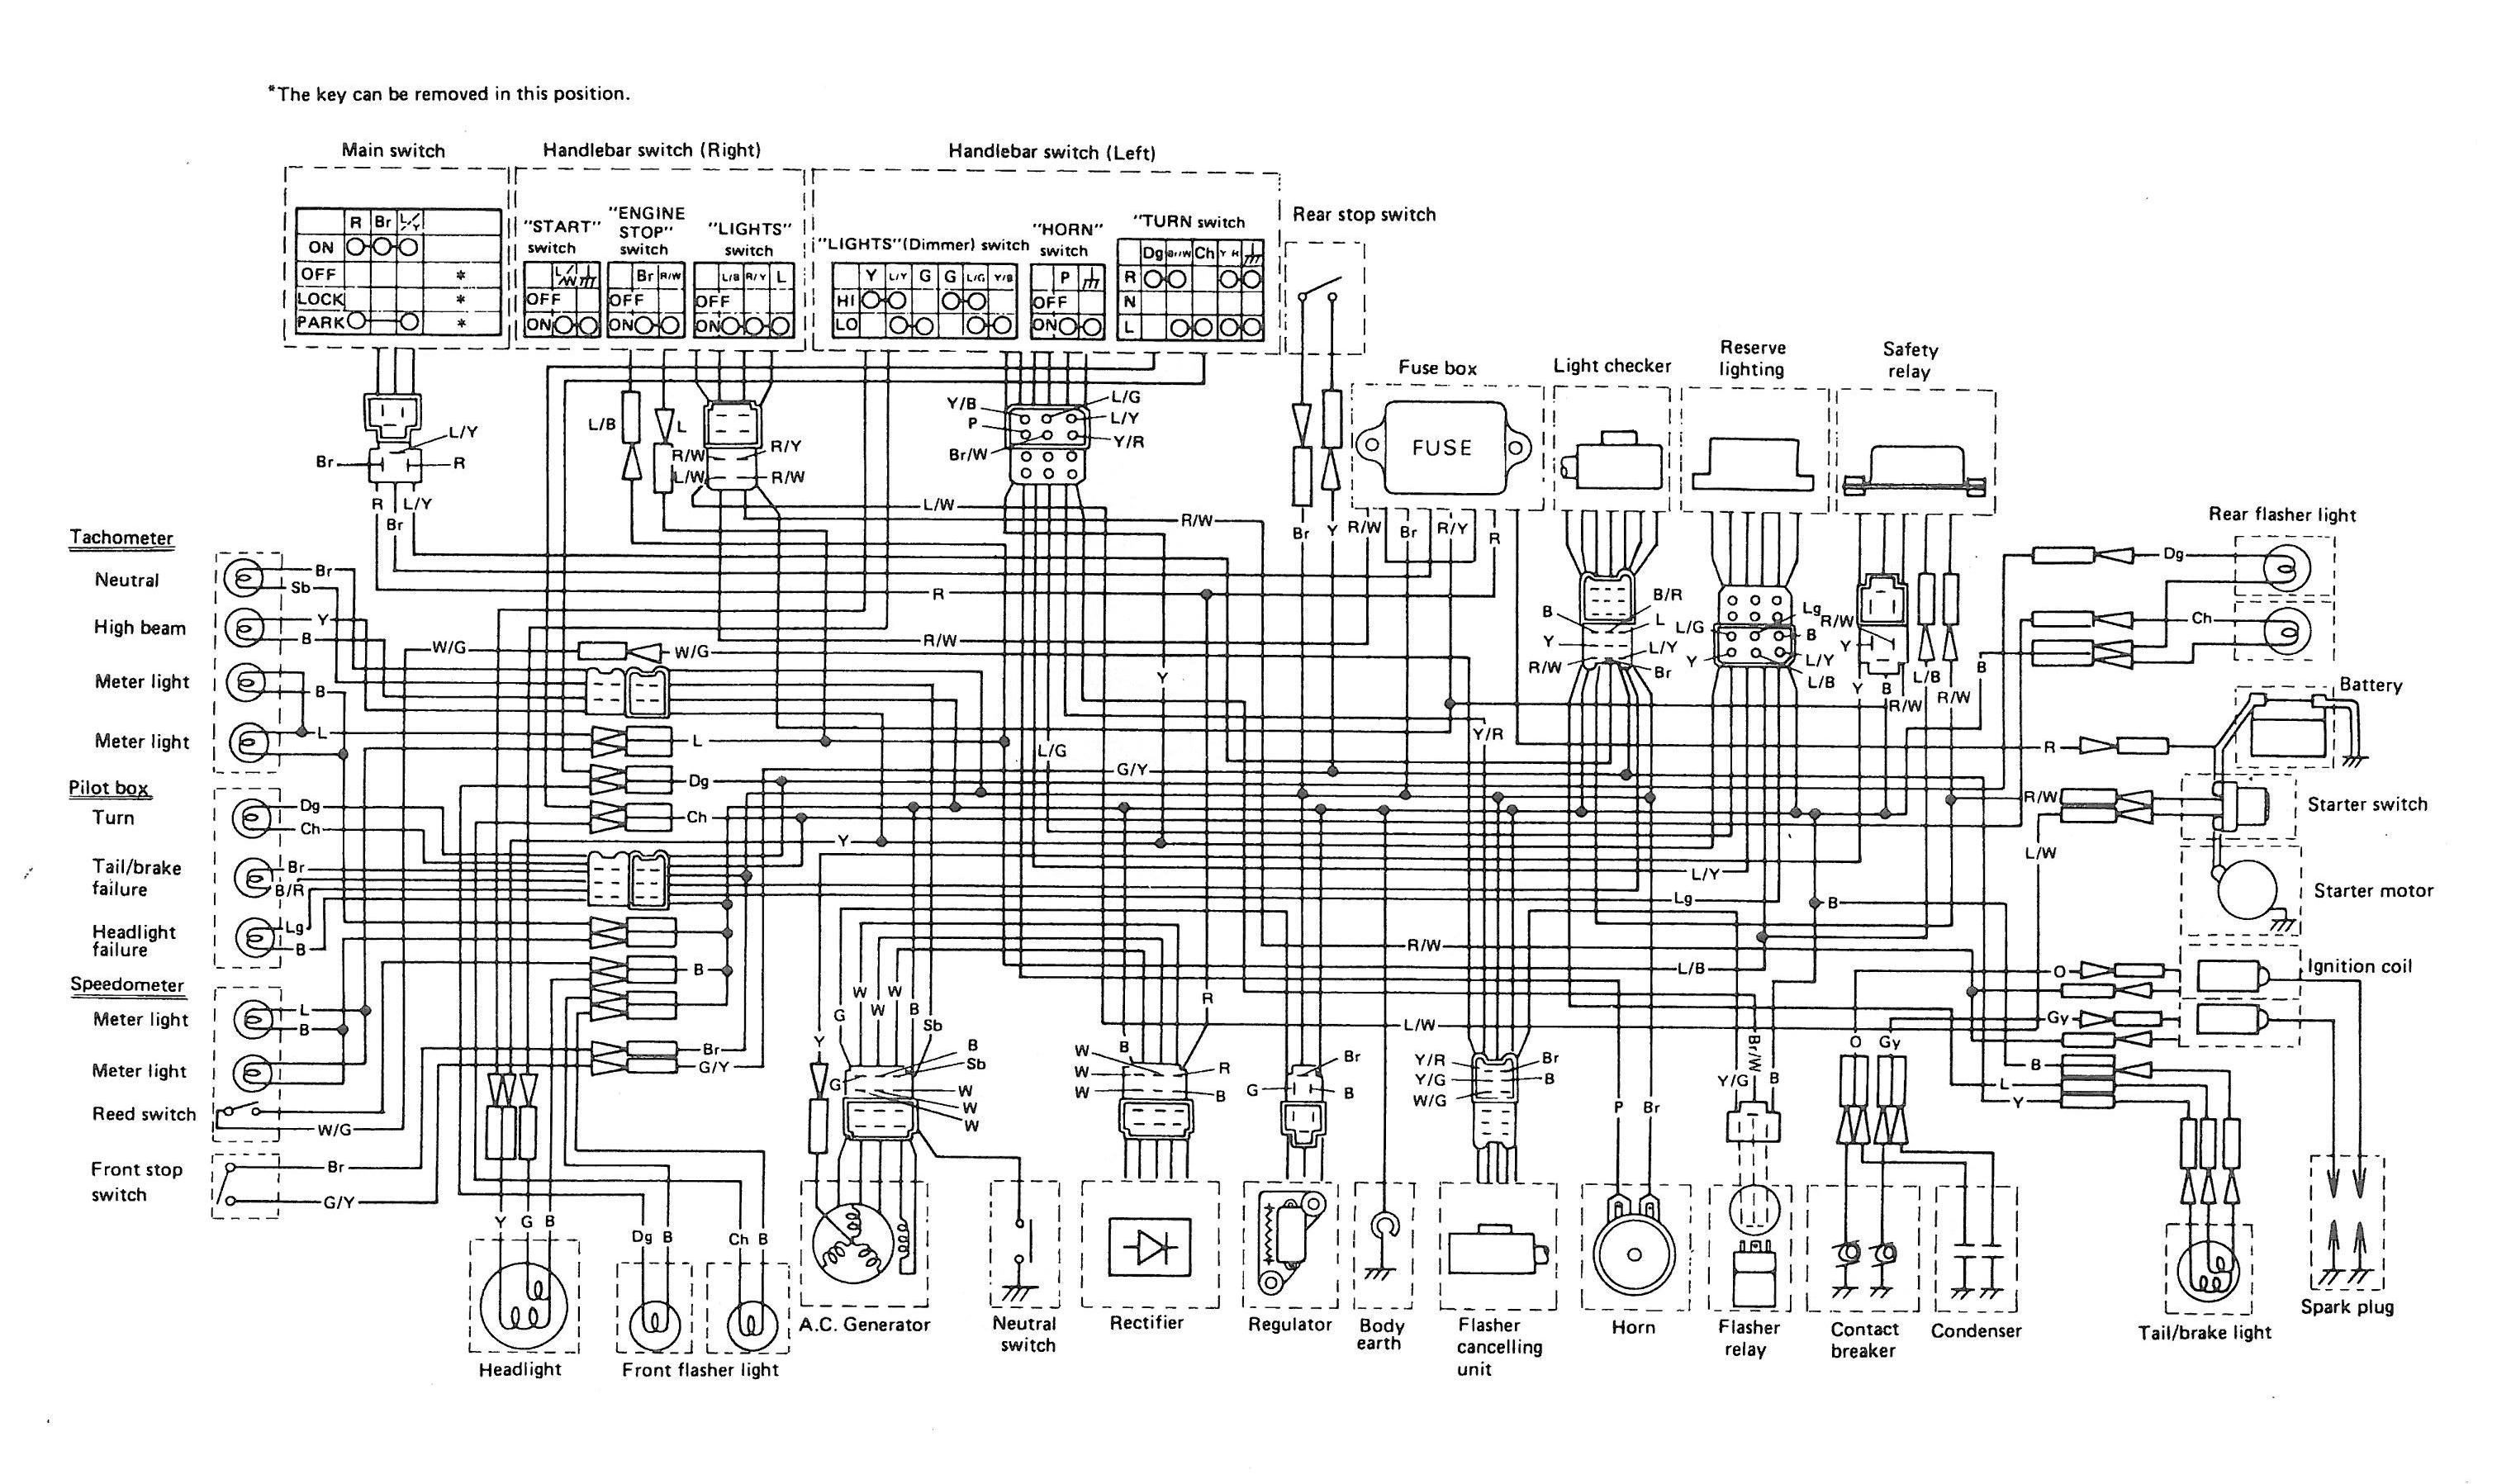 modern yamaha aerox wiring diagram inspiration best images for rh oursweetbakeshop info Yamaha DT 250 Wiring Schematic Yamaha DT 250 Wiring Schematic